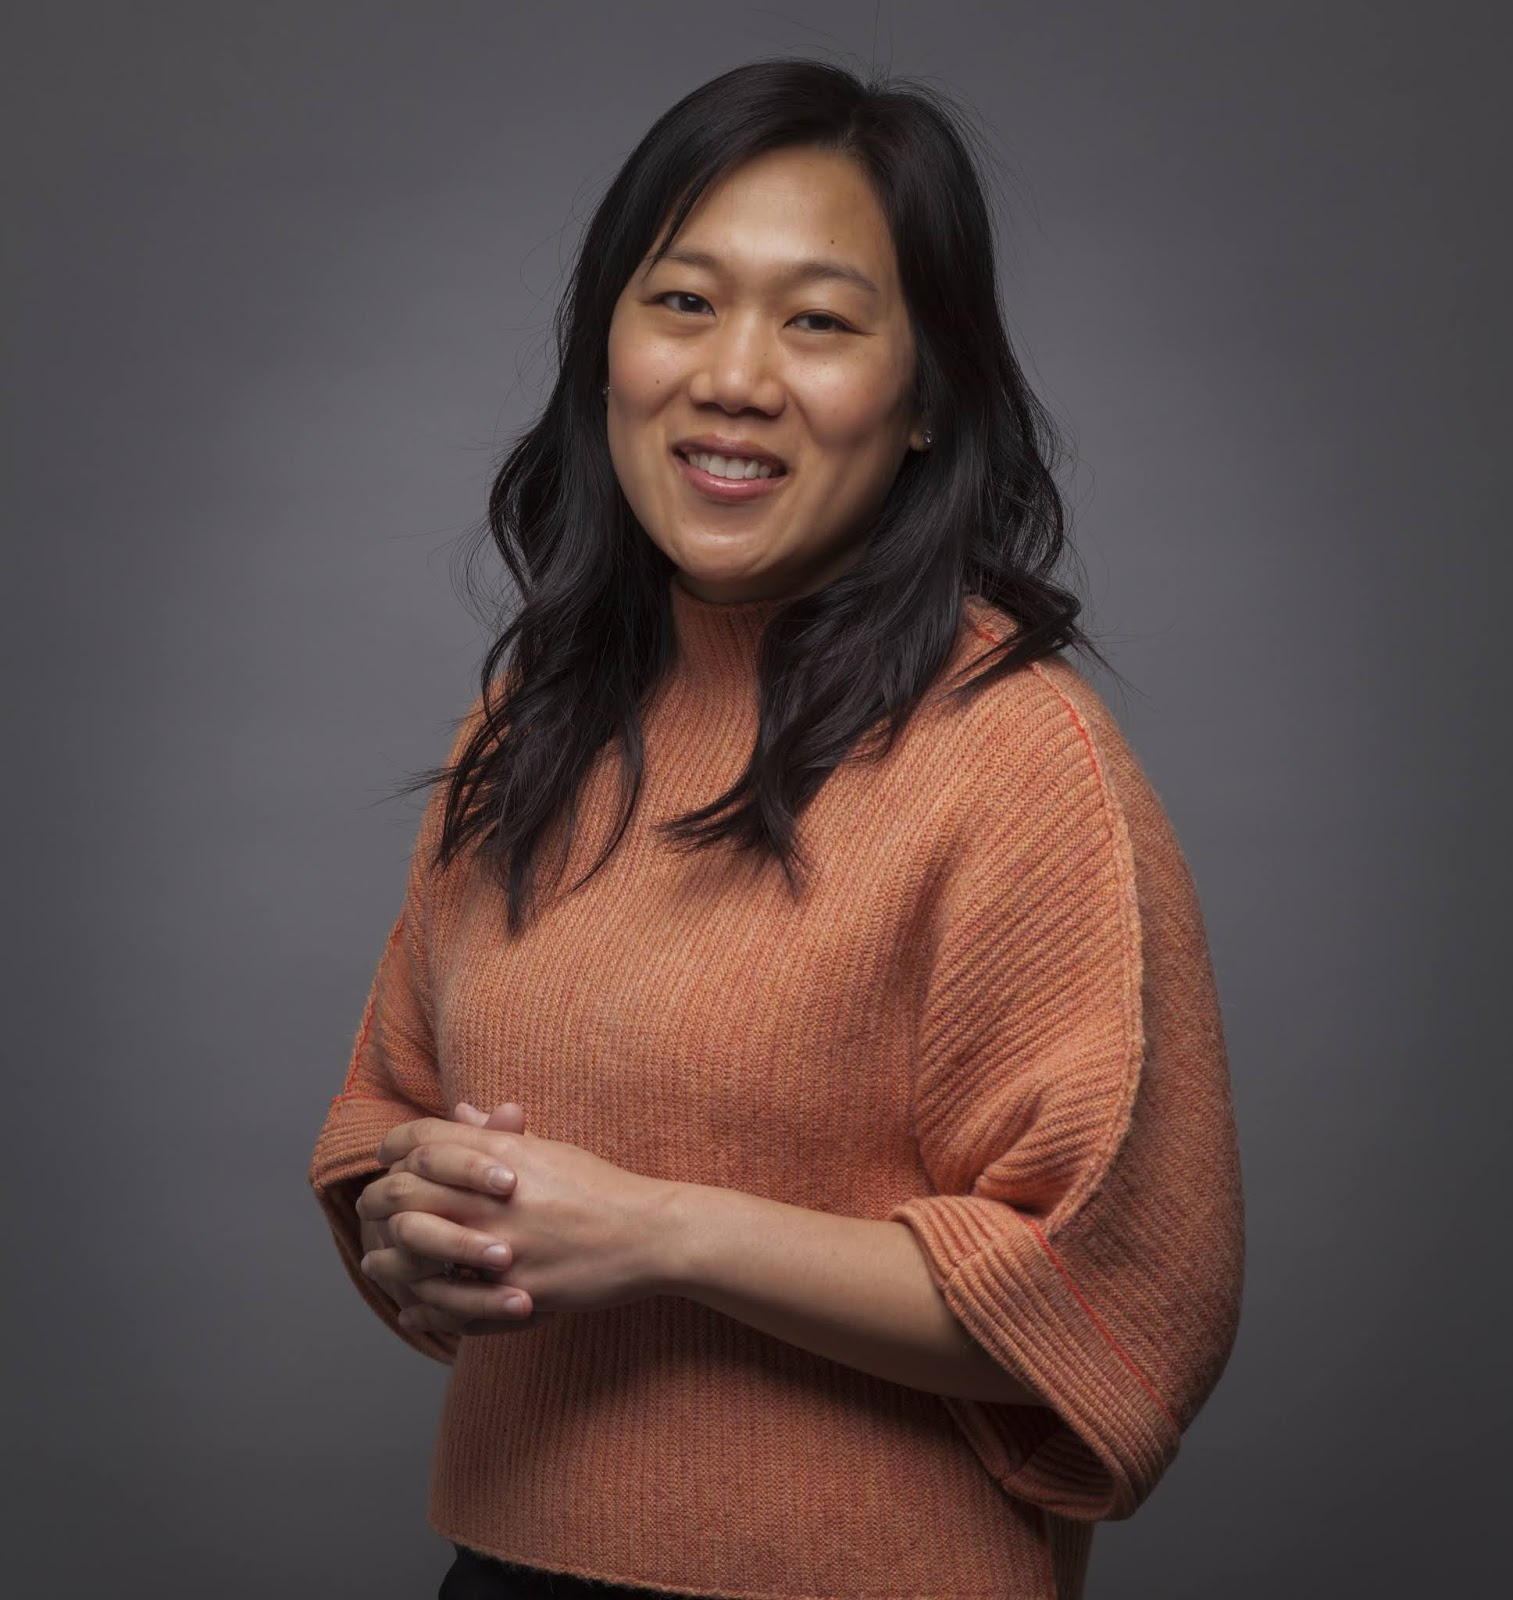 Priscilla Chan Biography, Wiki, Age, Husband, Parents, Kids